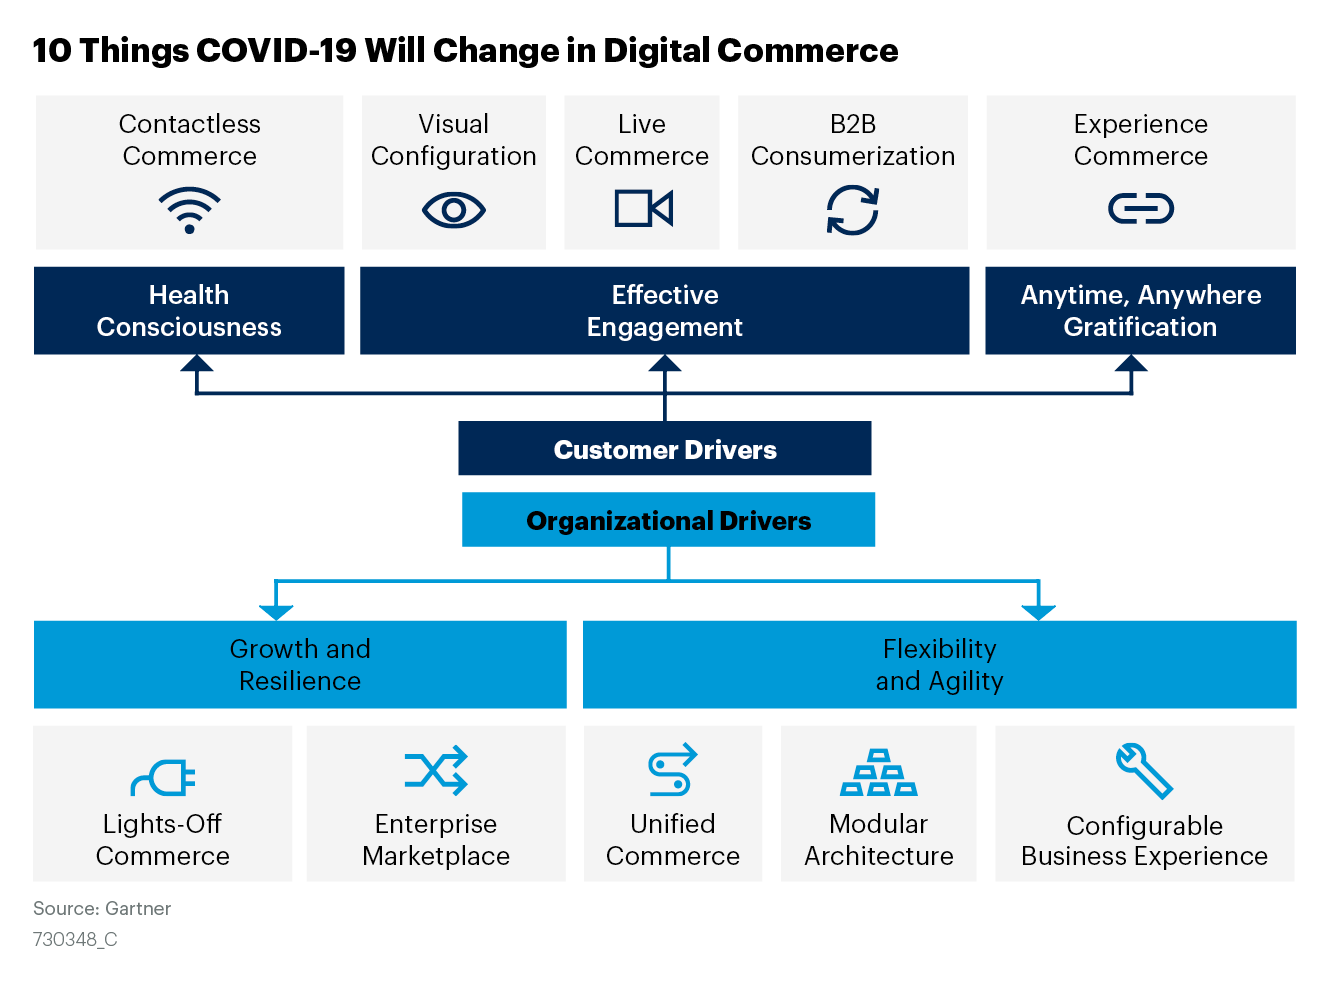 Drivers-from-the-customer-and-organization's-side-will-lead-to-changes-in-digital-commerce--Nine-changes-are_-contactless-commerce,-visualization,-live-commerce,-B2B-consumerization,-lights-off-commerce,-ent